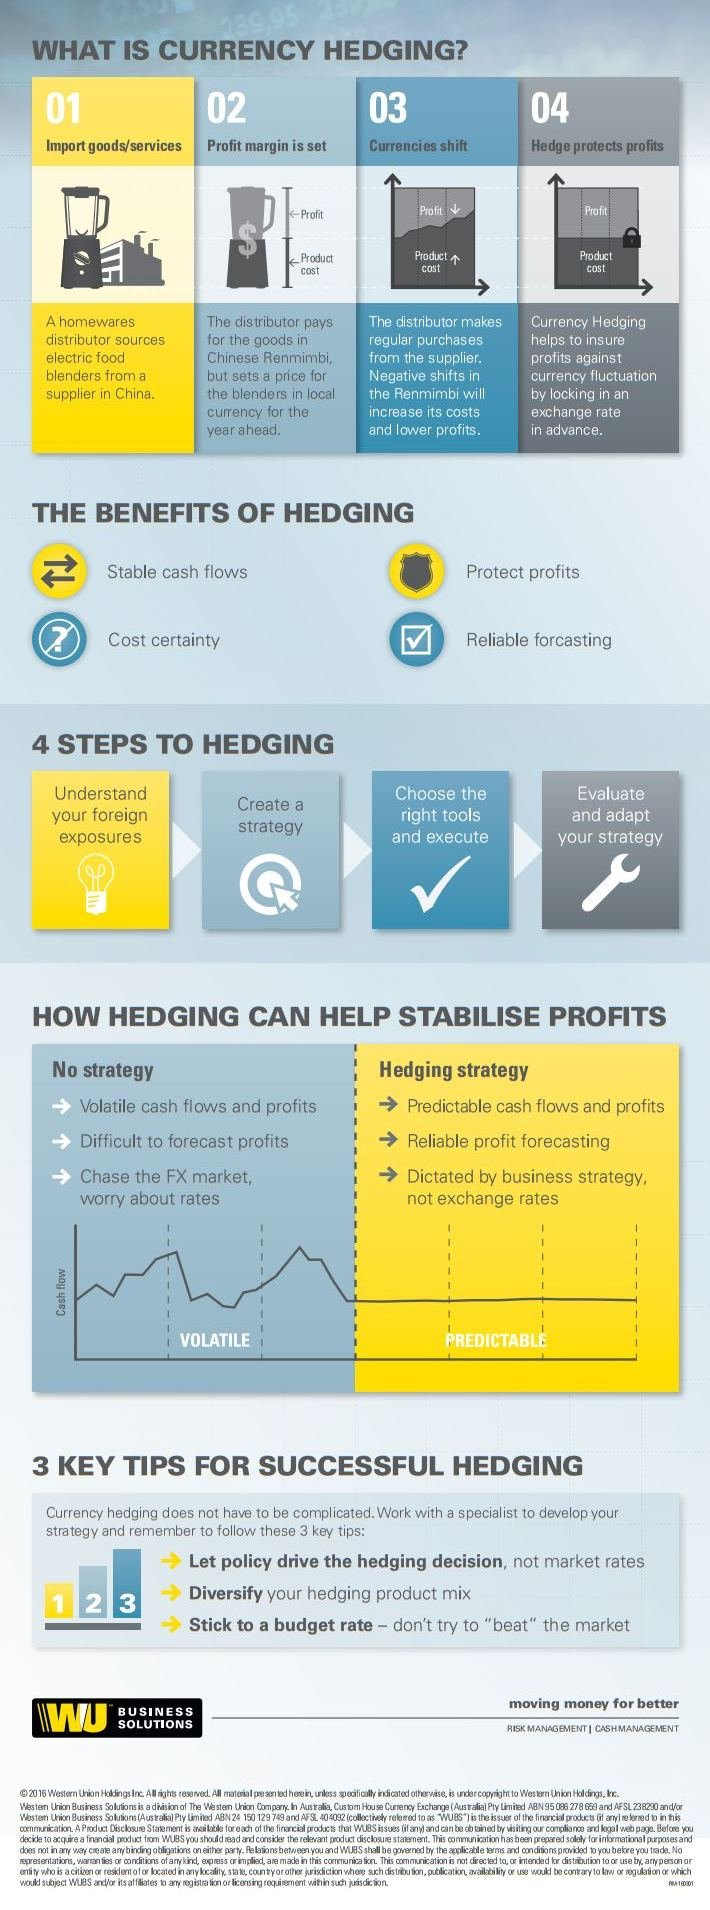 Discover the basic elements of Currency Hedging